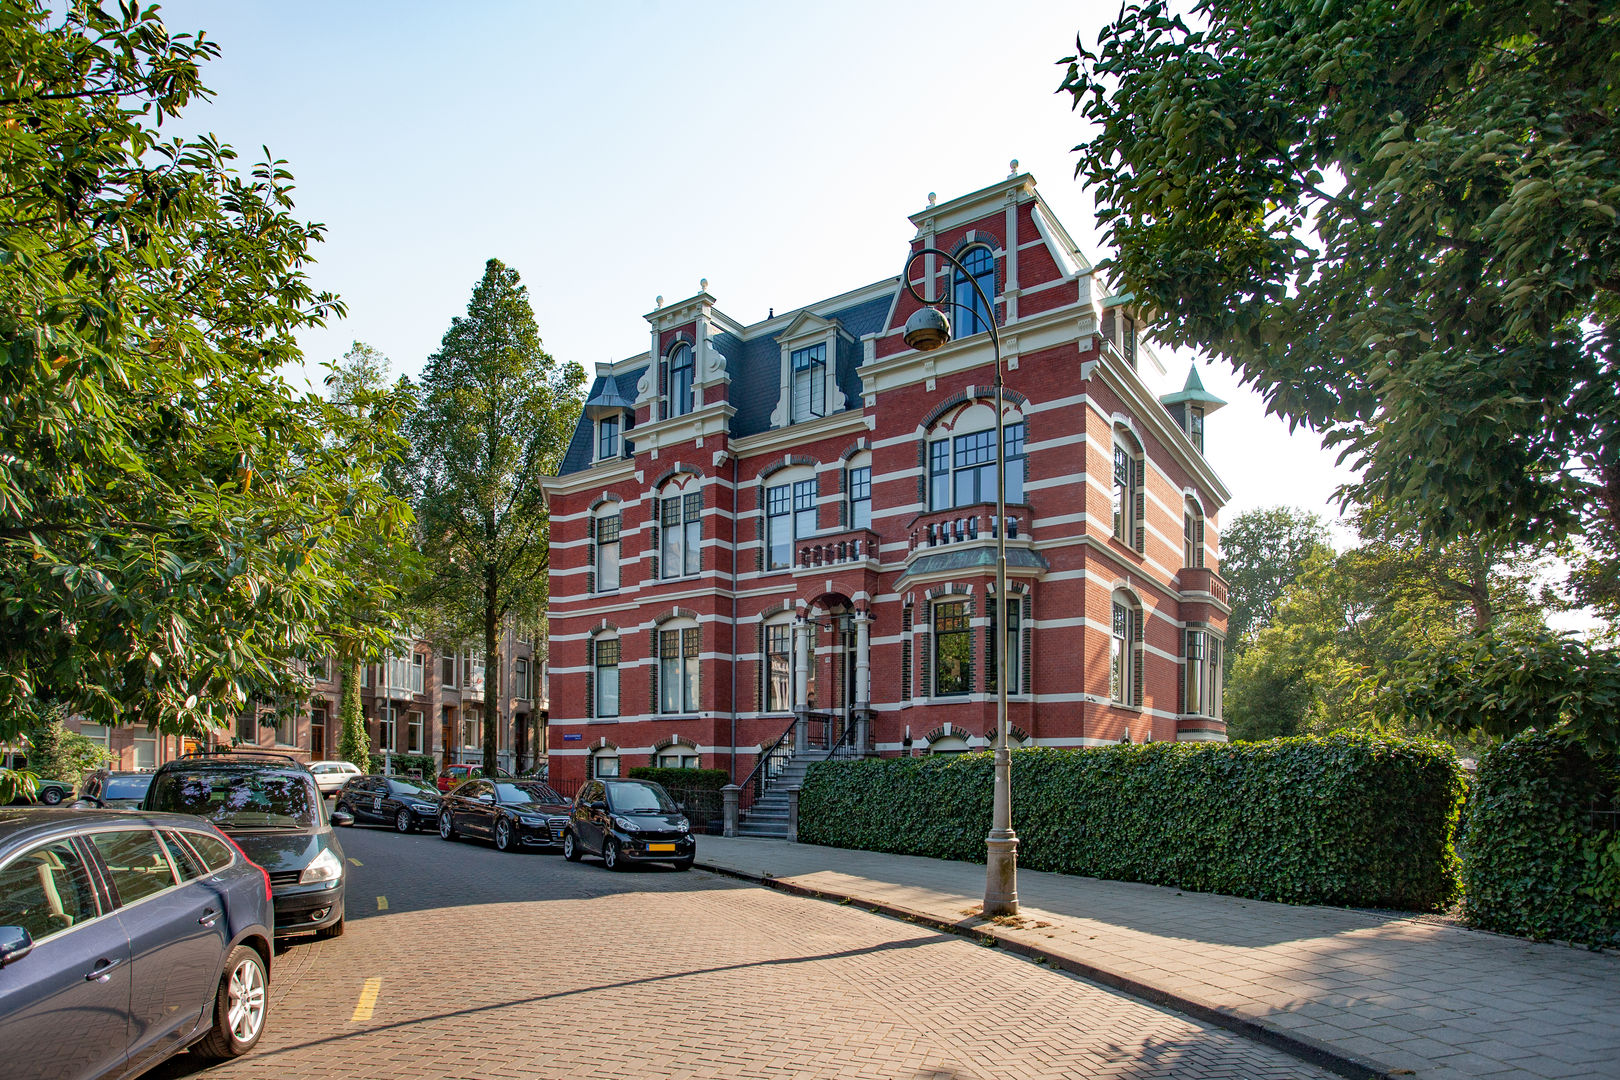 Van Eeghenstraat Mansion in Amsterdam